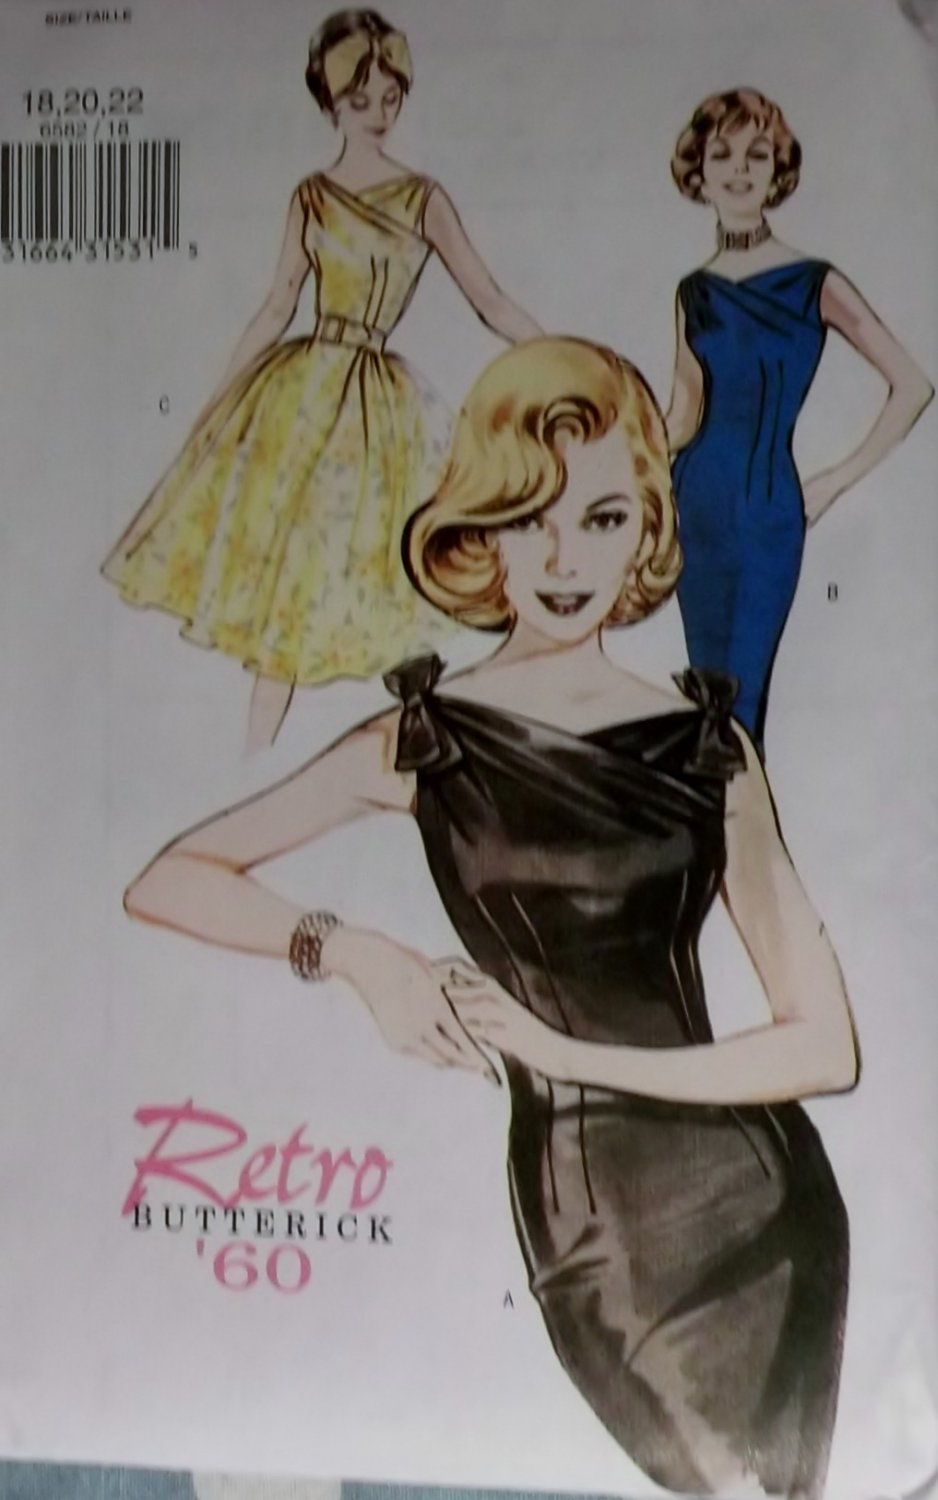 Retro Butterick B 6582 Patterns  Misses' Dresses, Sizes 12, 14, 16, UNCUT